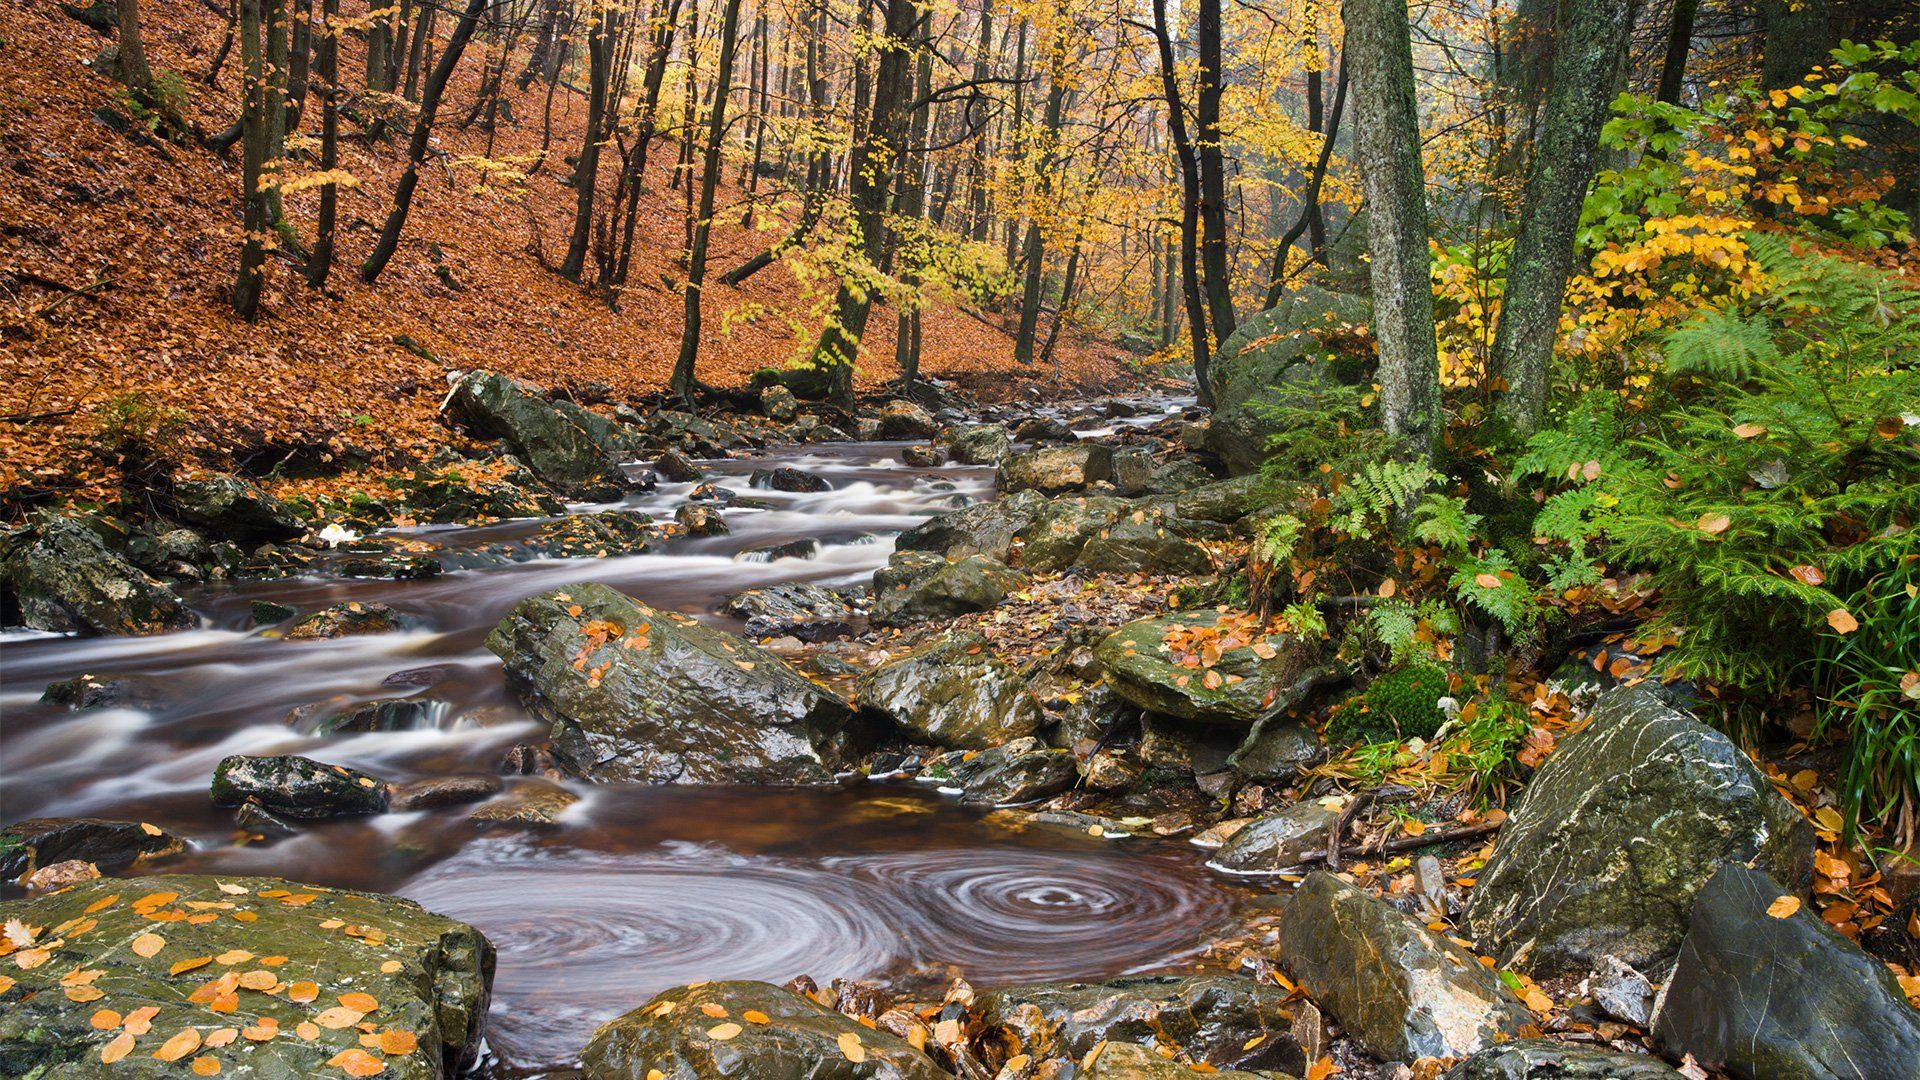 A mountain stream flows through an autumnal landscape, with ferns and rocks in the foreground.